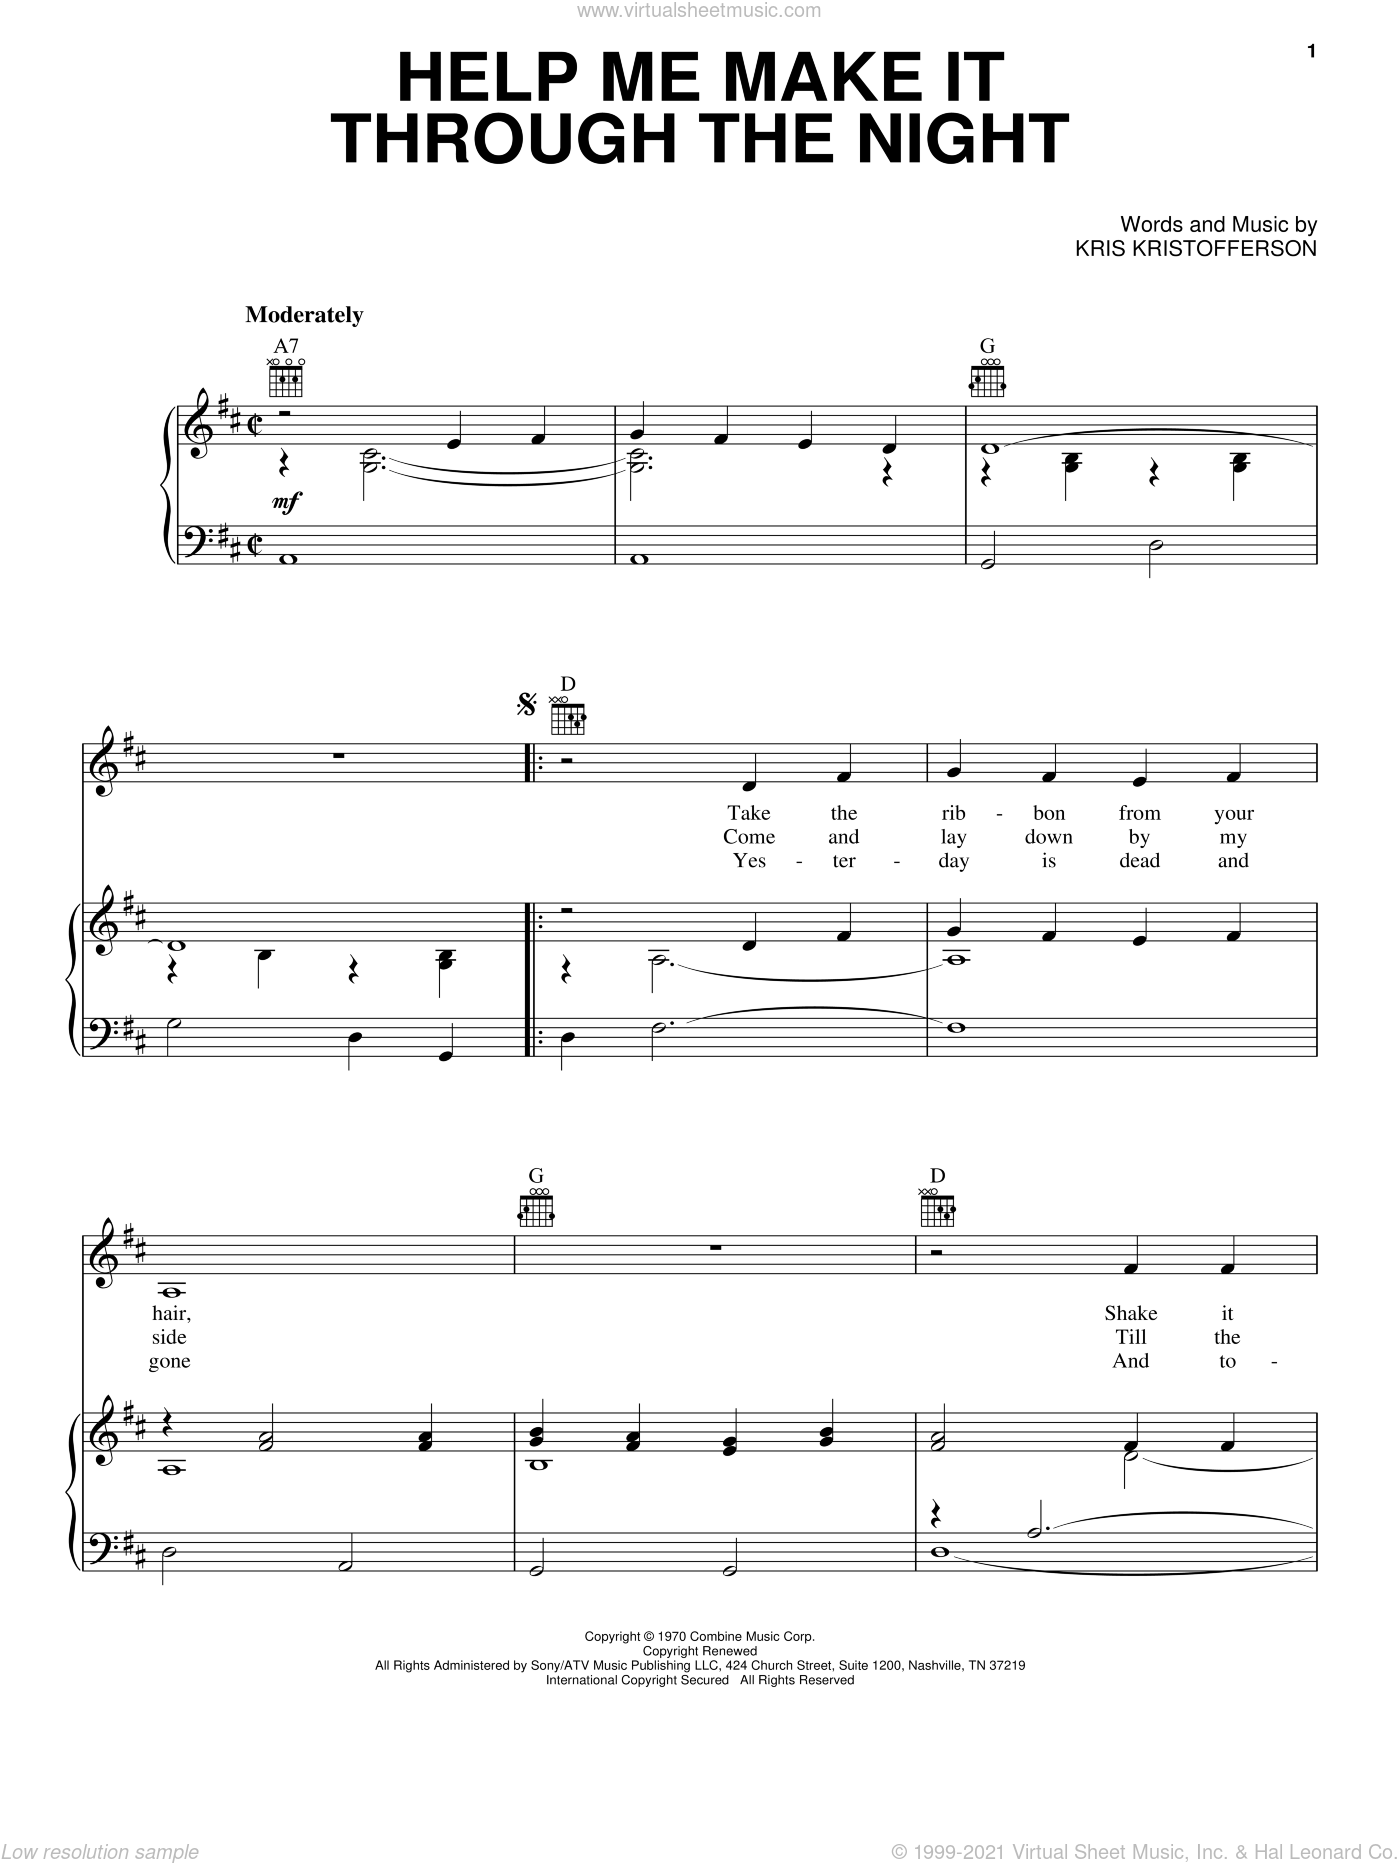 Help Me Make It Through The Night sheet music for voice, piano or guitar by Kris Kristofferson